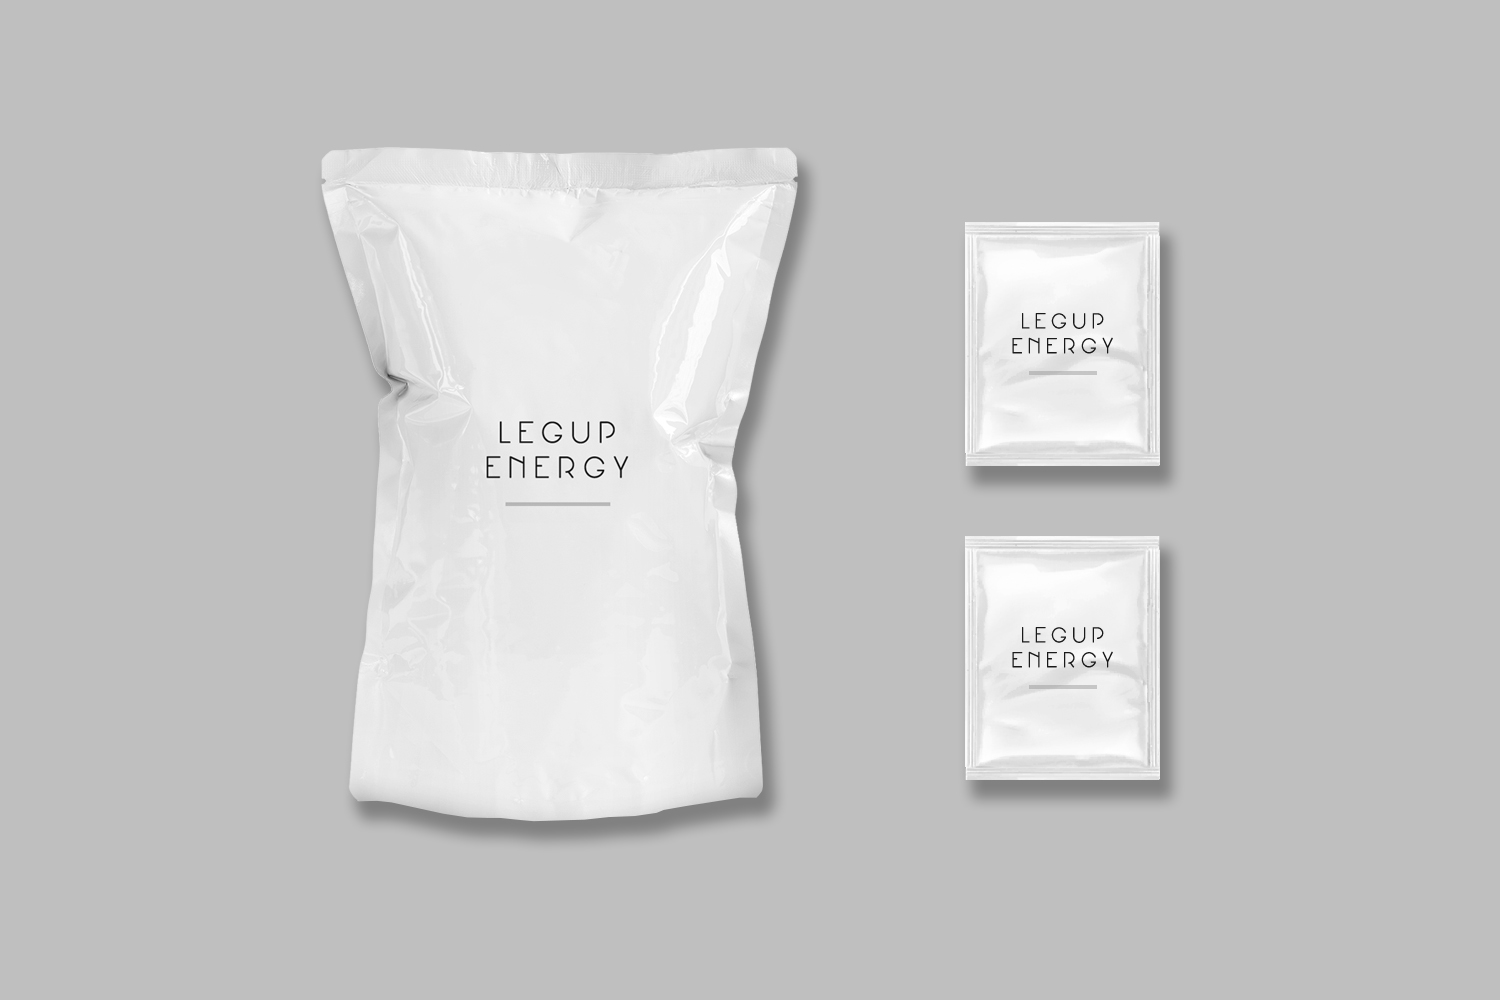 Please note : these bags are simply for logo showcasing purposes.